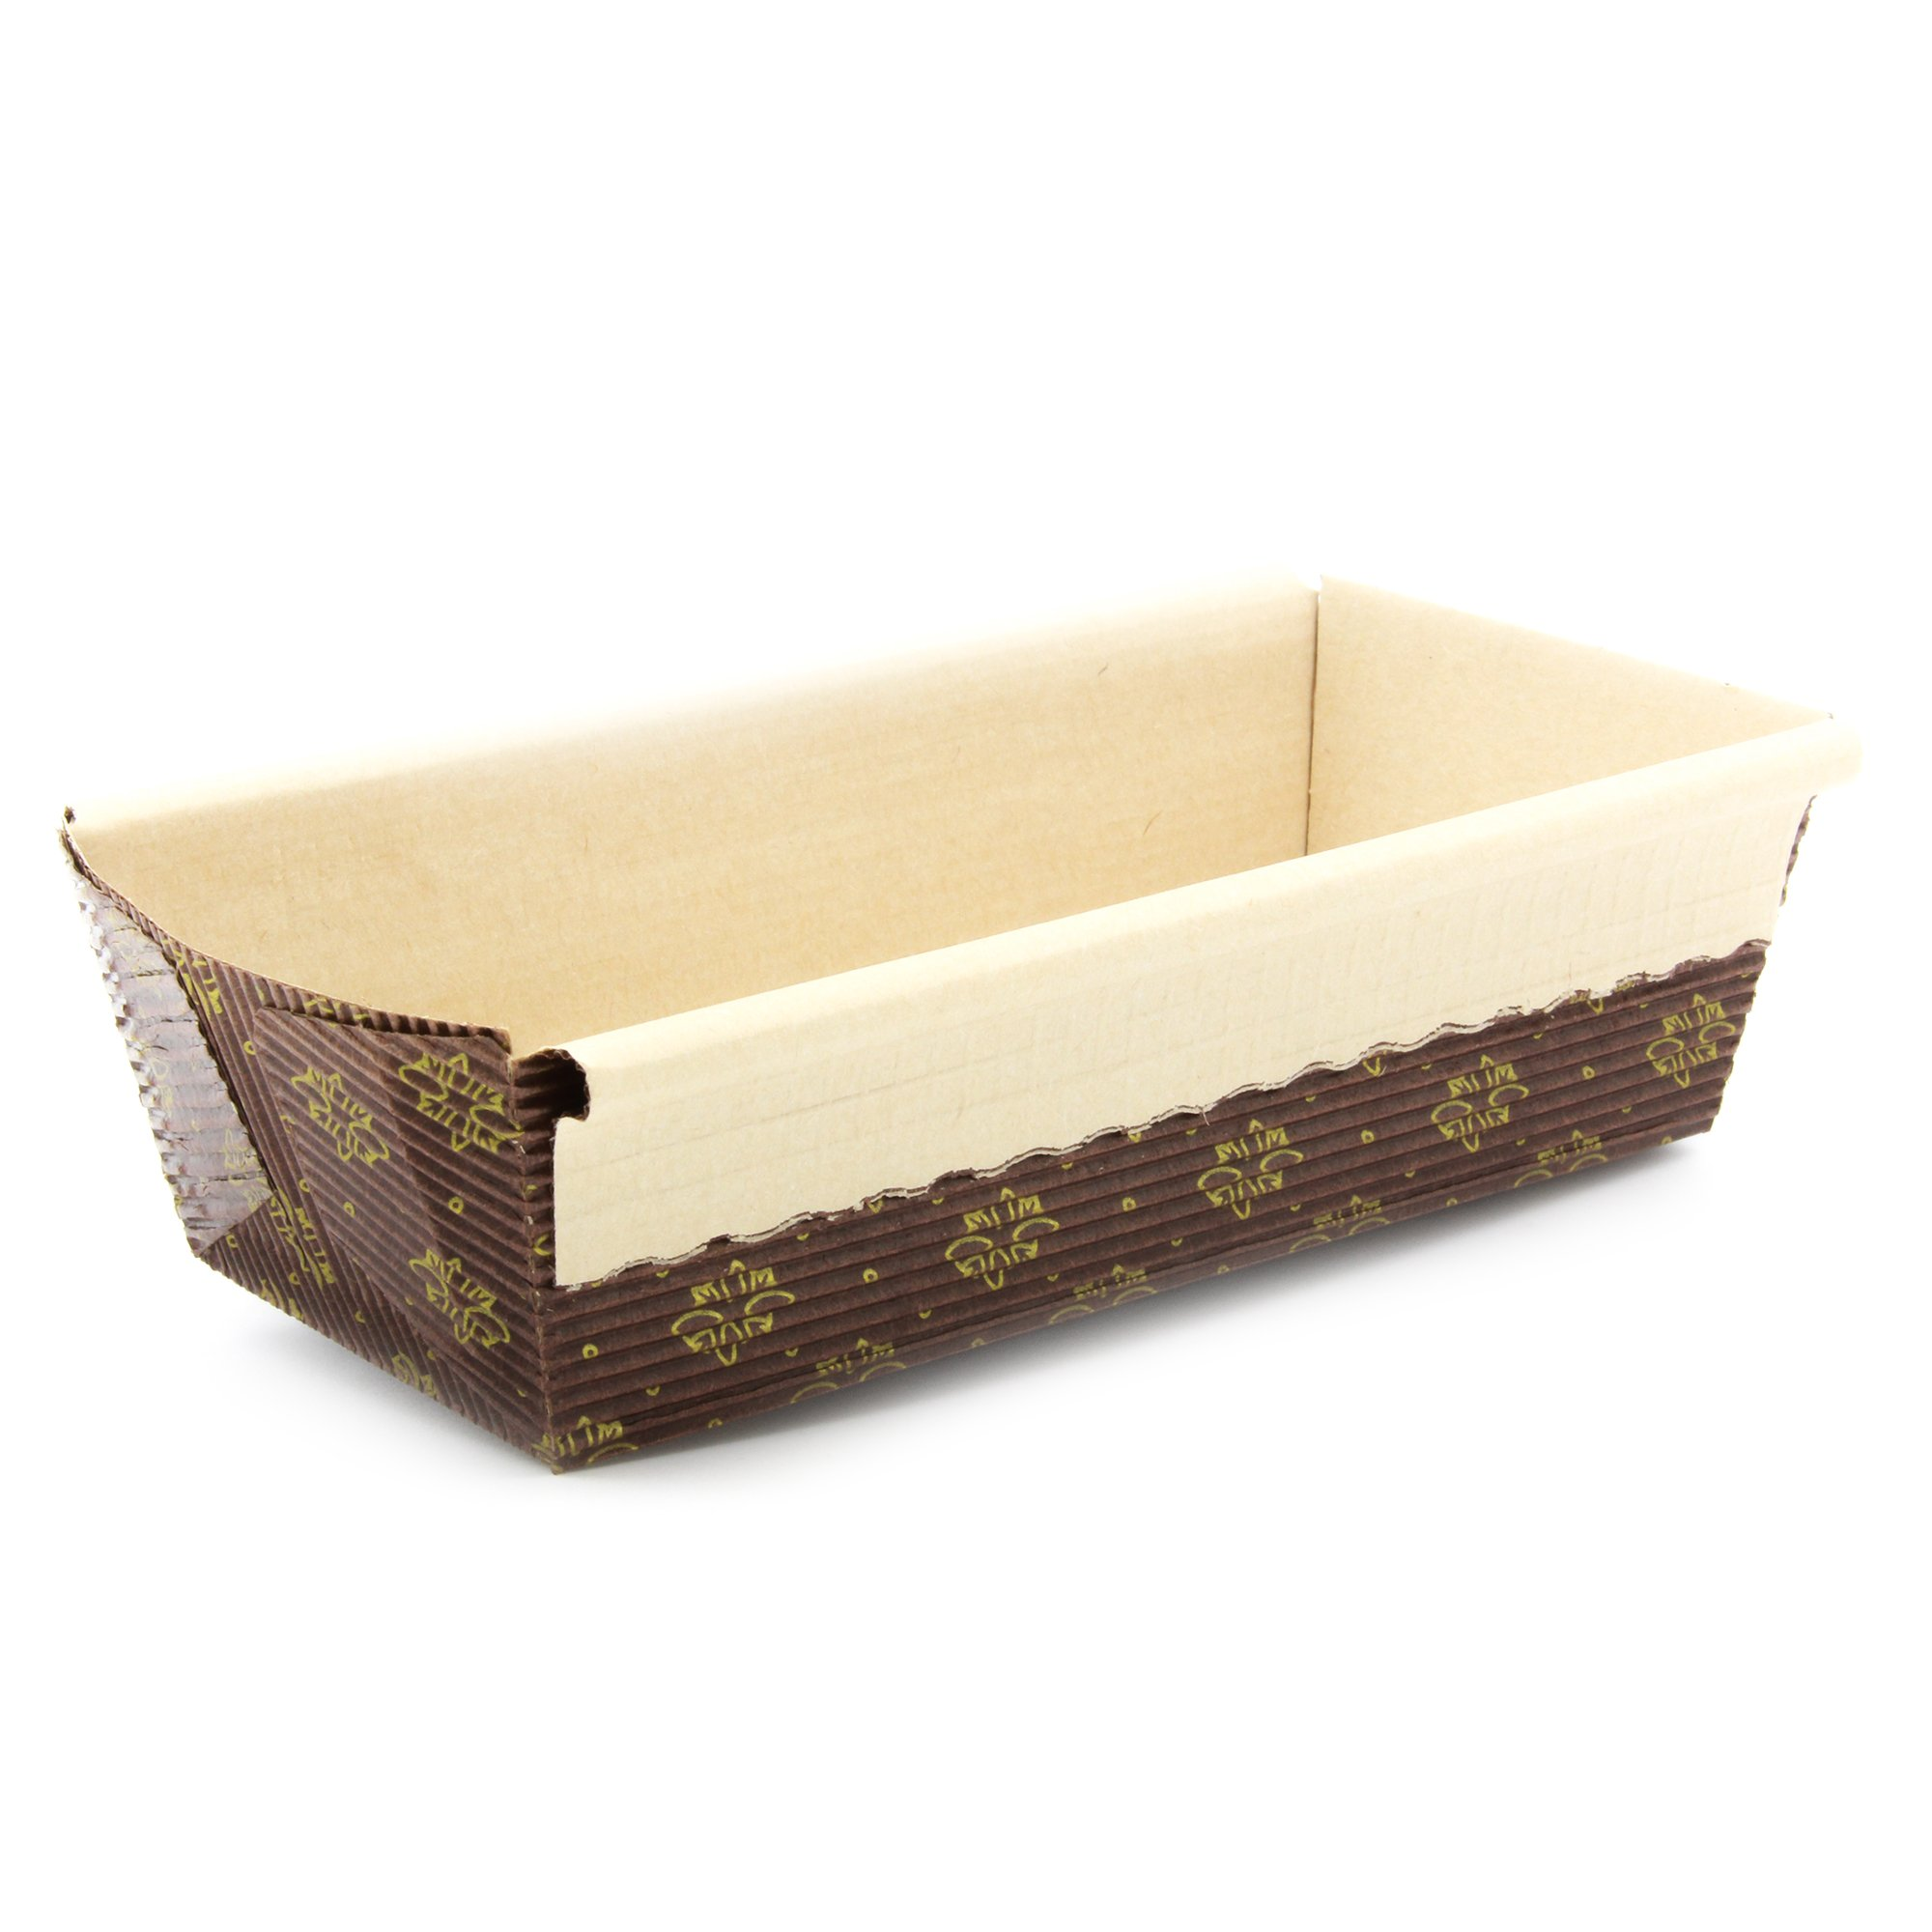 New Premium Paper Baking Loaf Pan, Nonstick, Disposable, All Natural & Eco Friendly, for Chocolate Cake, Banana Bread By Ecobake (100) by Ecobake (Image #1)